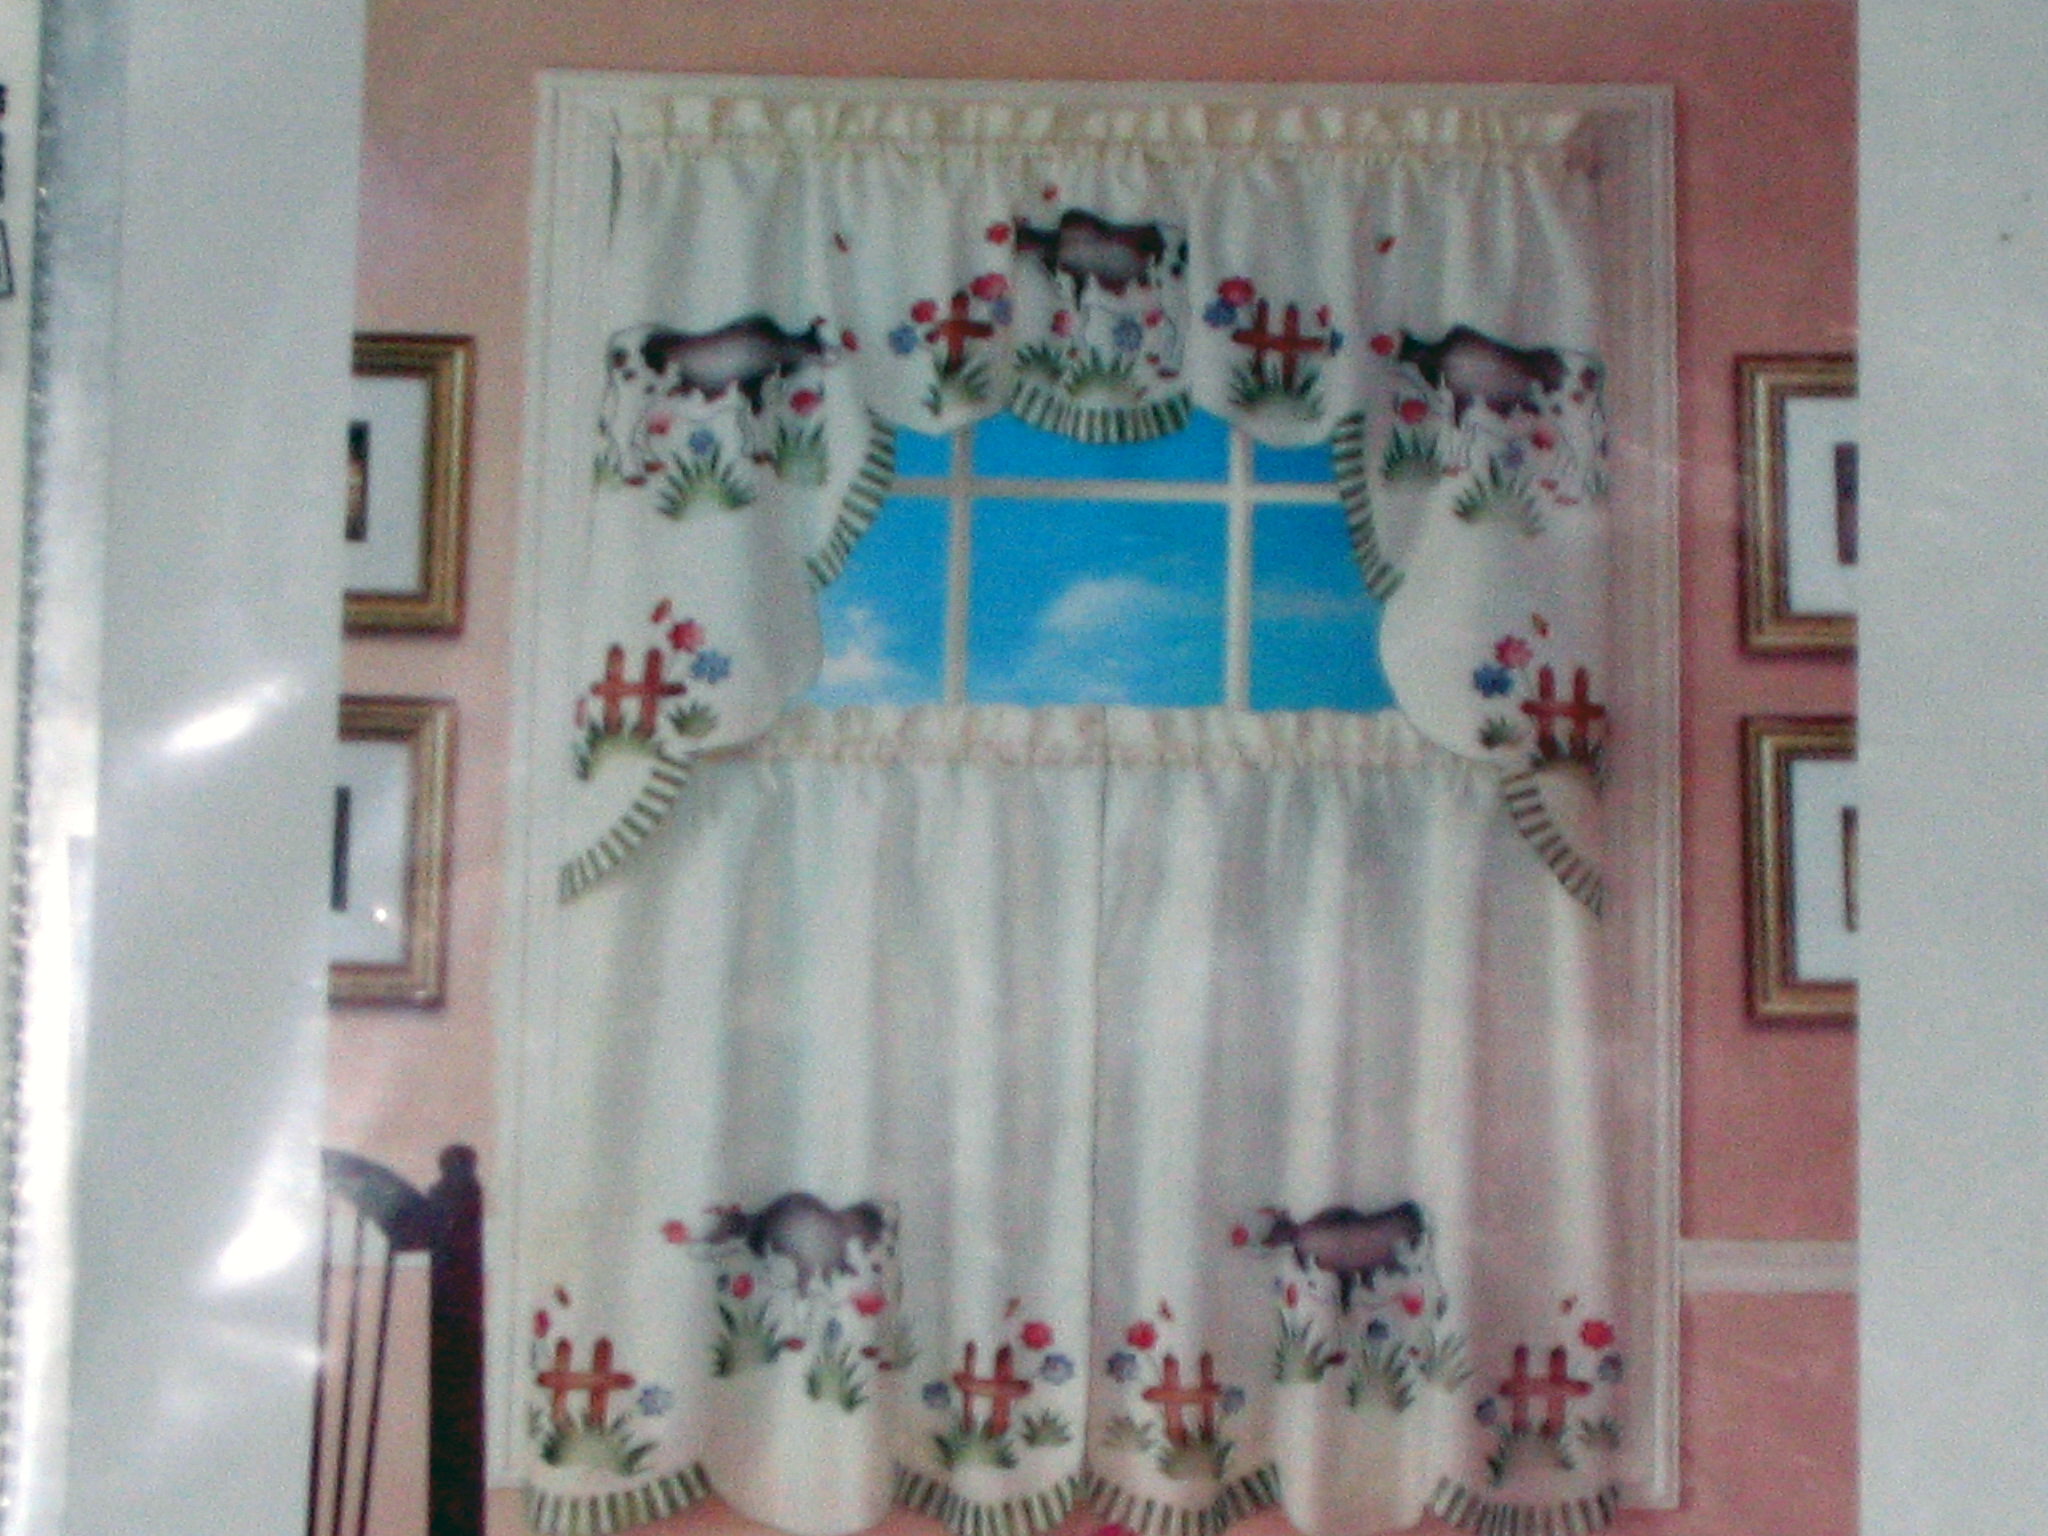 Cow Kitchen Curtains Cow Kitchen Curtains Curtain Design Cow Curtains So Need For My Kitchen